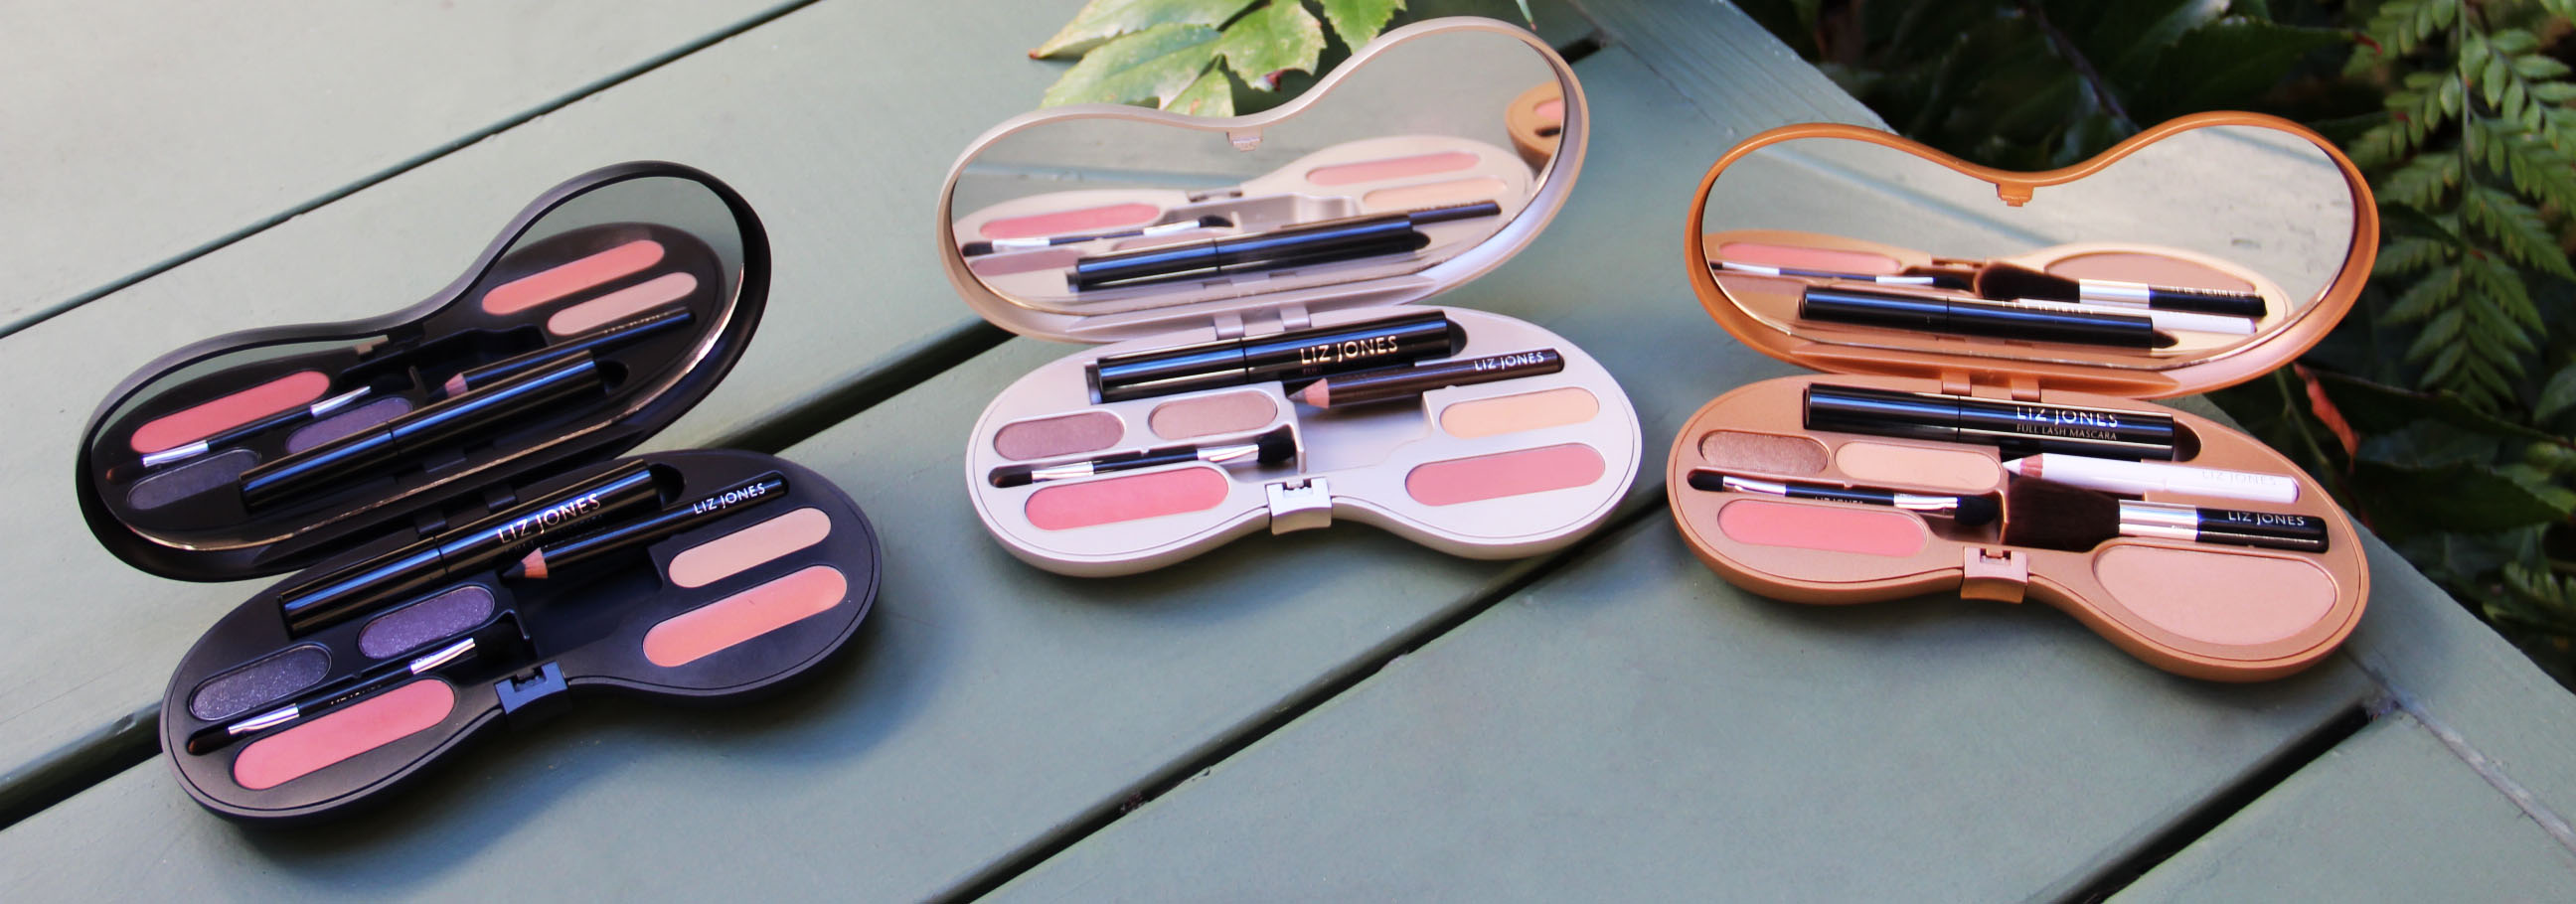 Liz Jones Makeup Kits